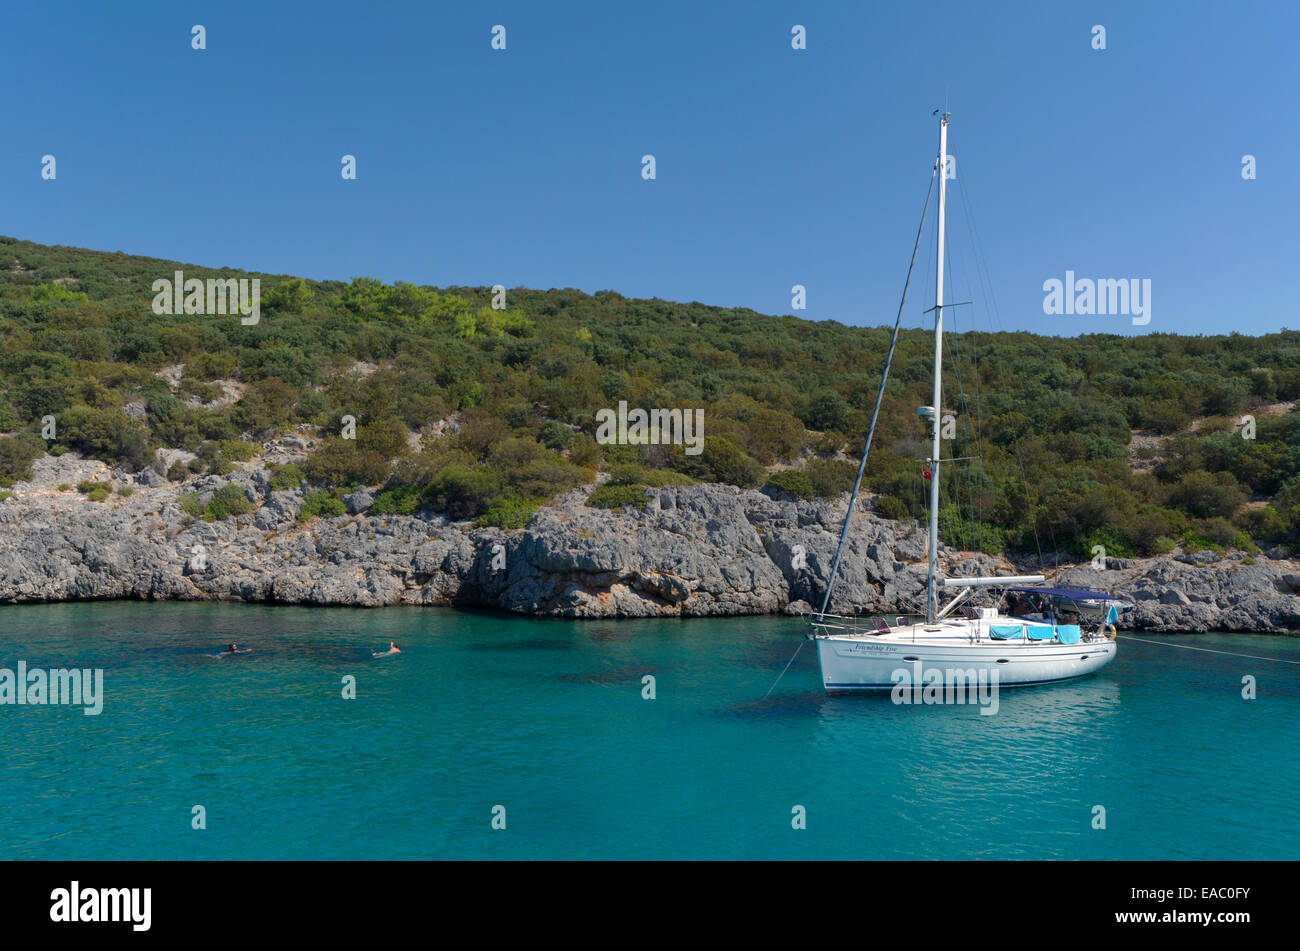 Yacht moored in the mediterranean - Stock Image